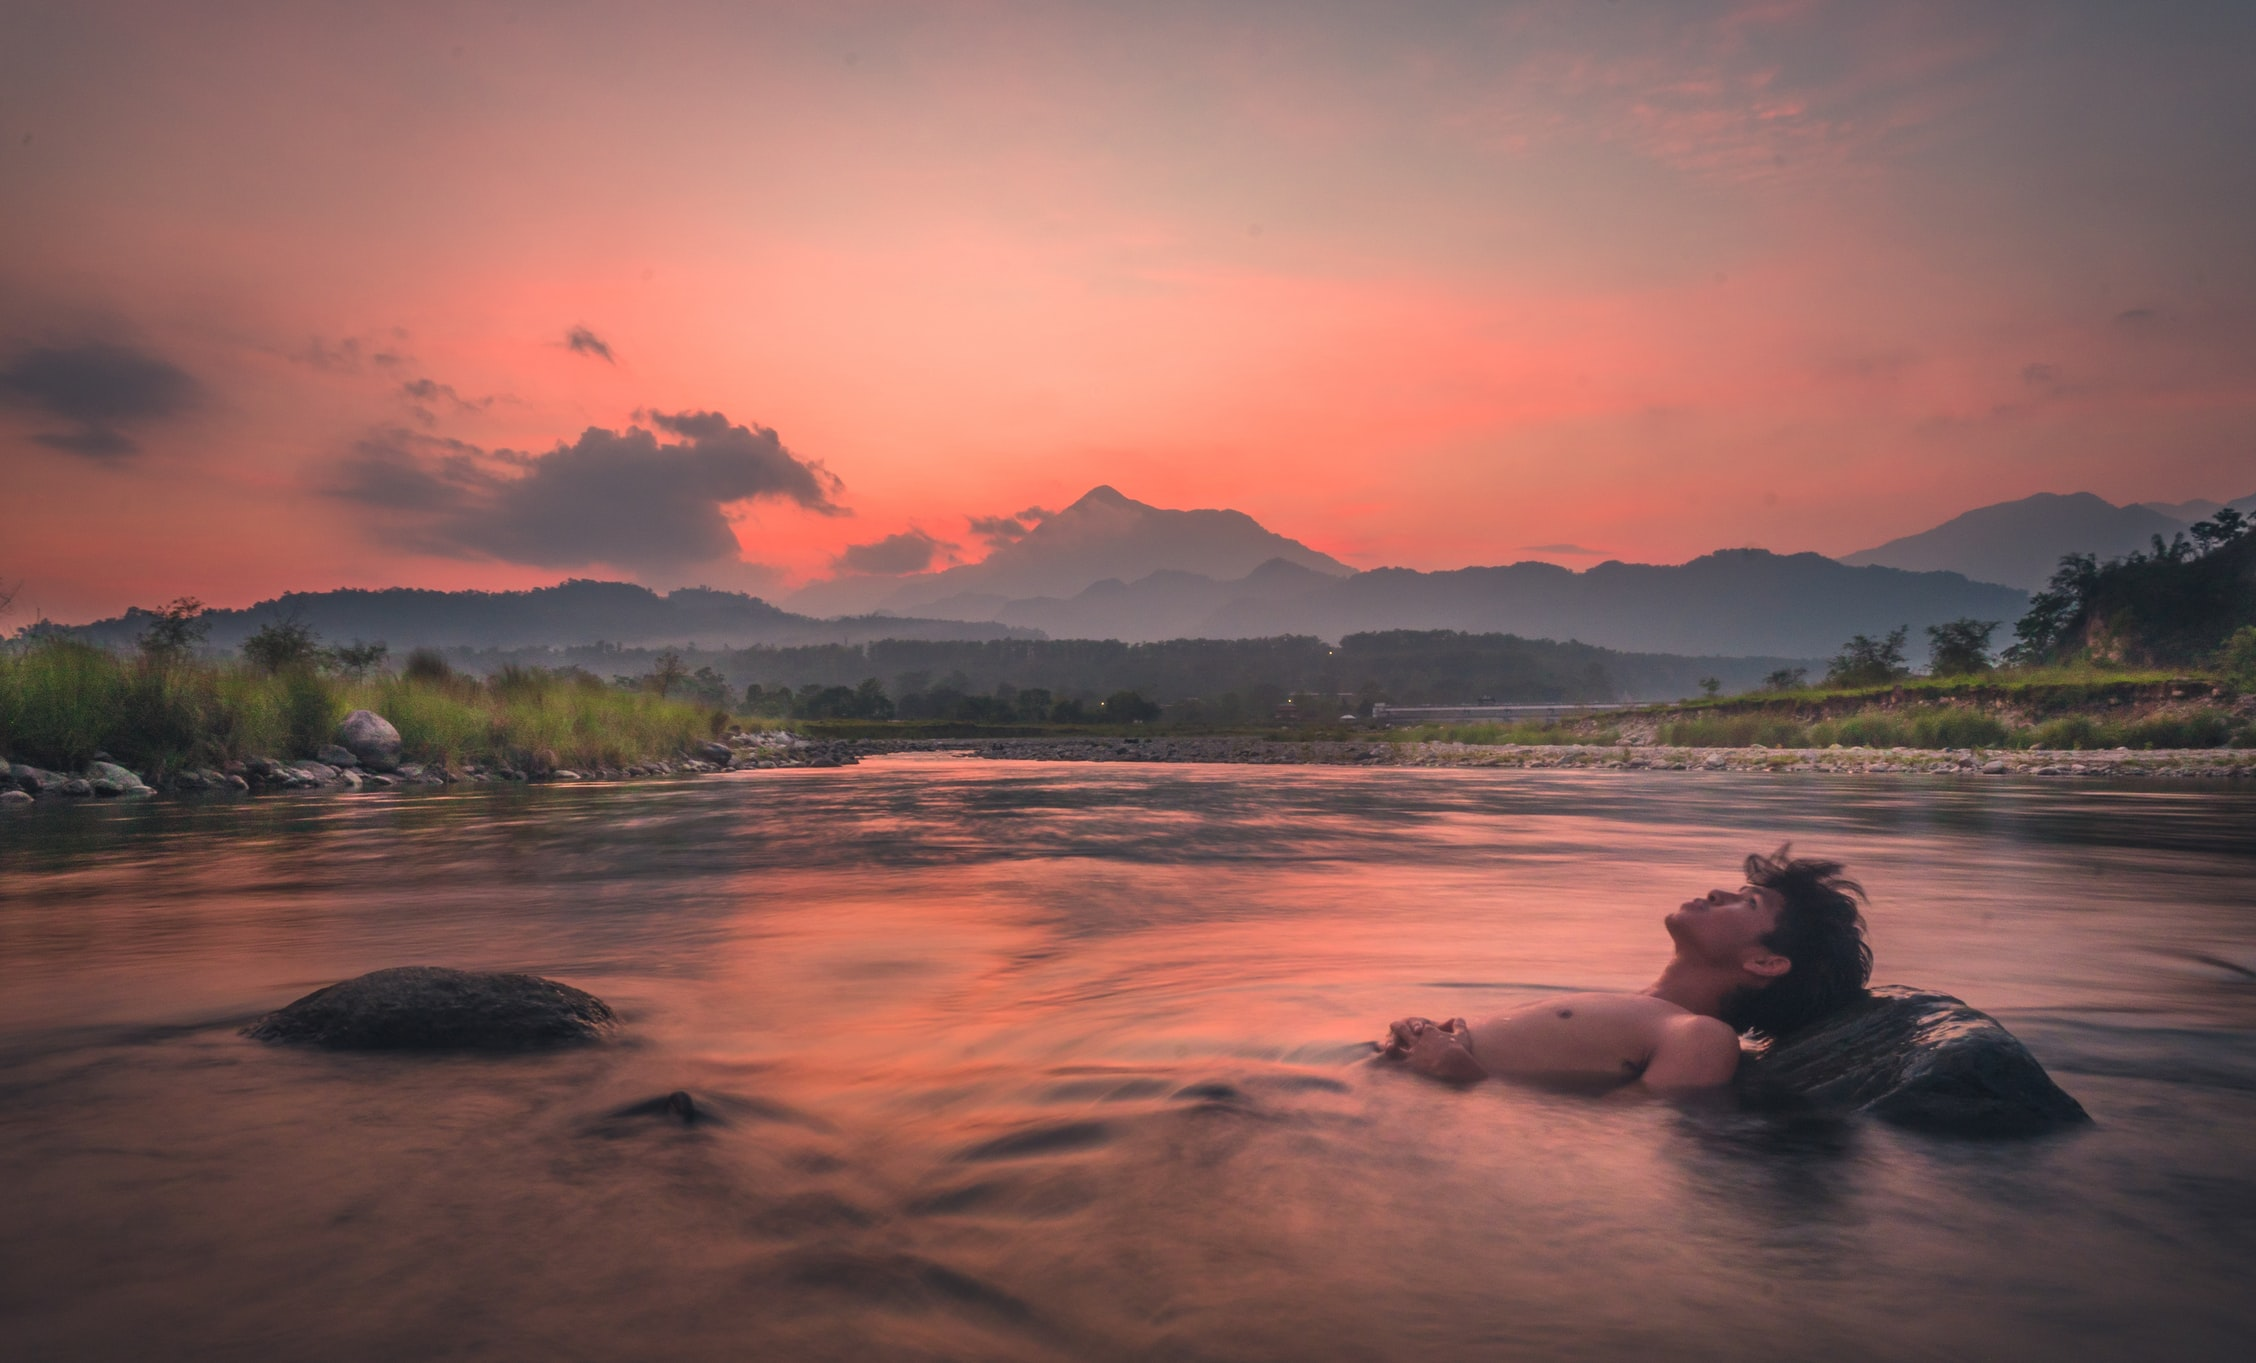 A man rests in a river in Assam, one of the seven sister states